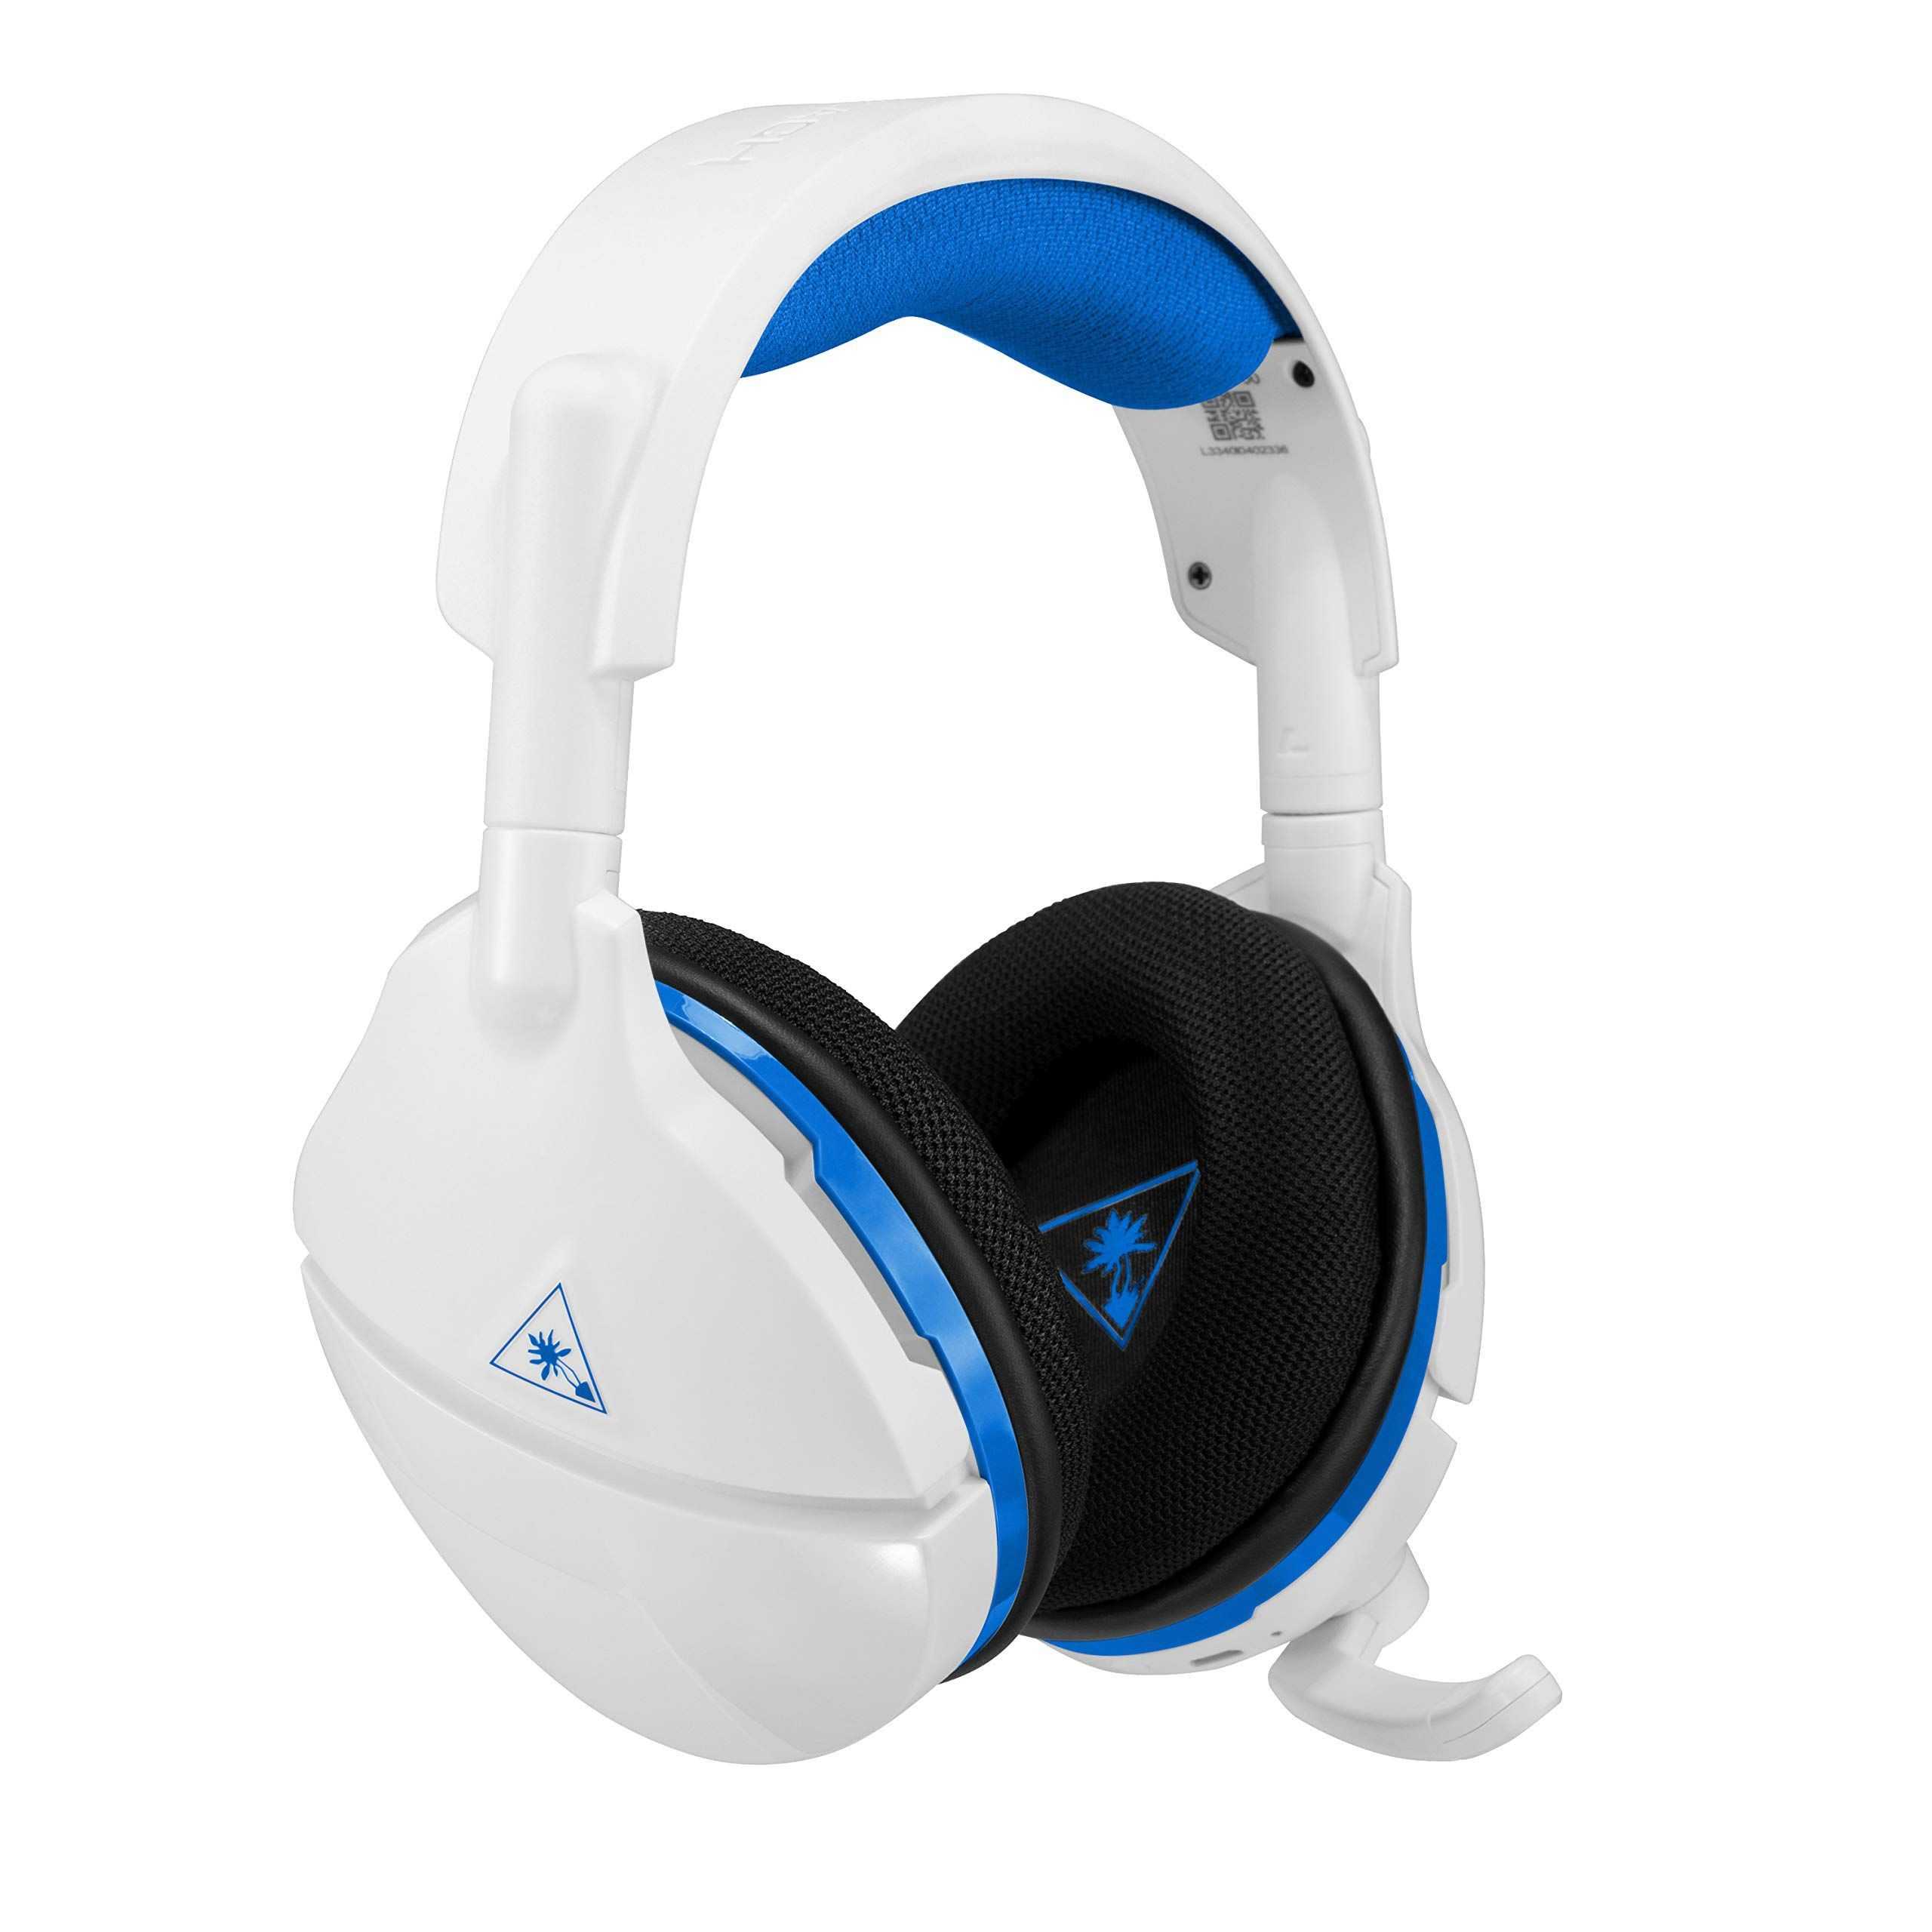 Stealth 600 White Wireless Surround Sound Gaming Headset For Playstation 4 Pro And Playstation 4 With Images Gaming Headset Wireless Gaming Headset Wireless Surround Sound